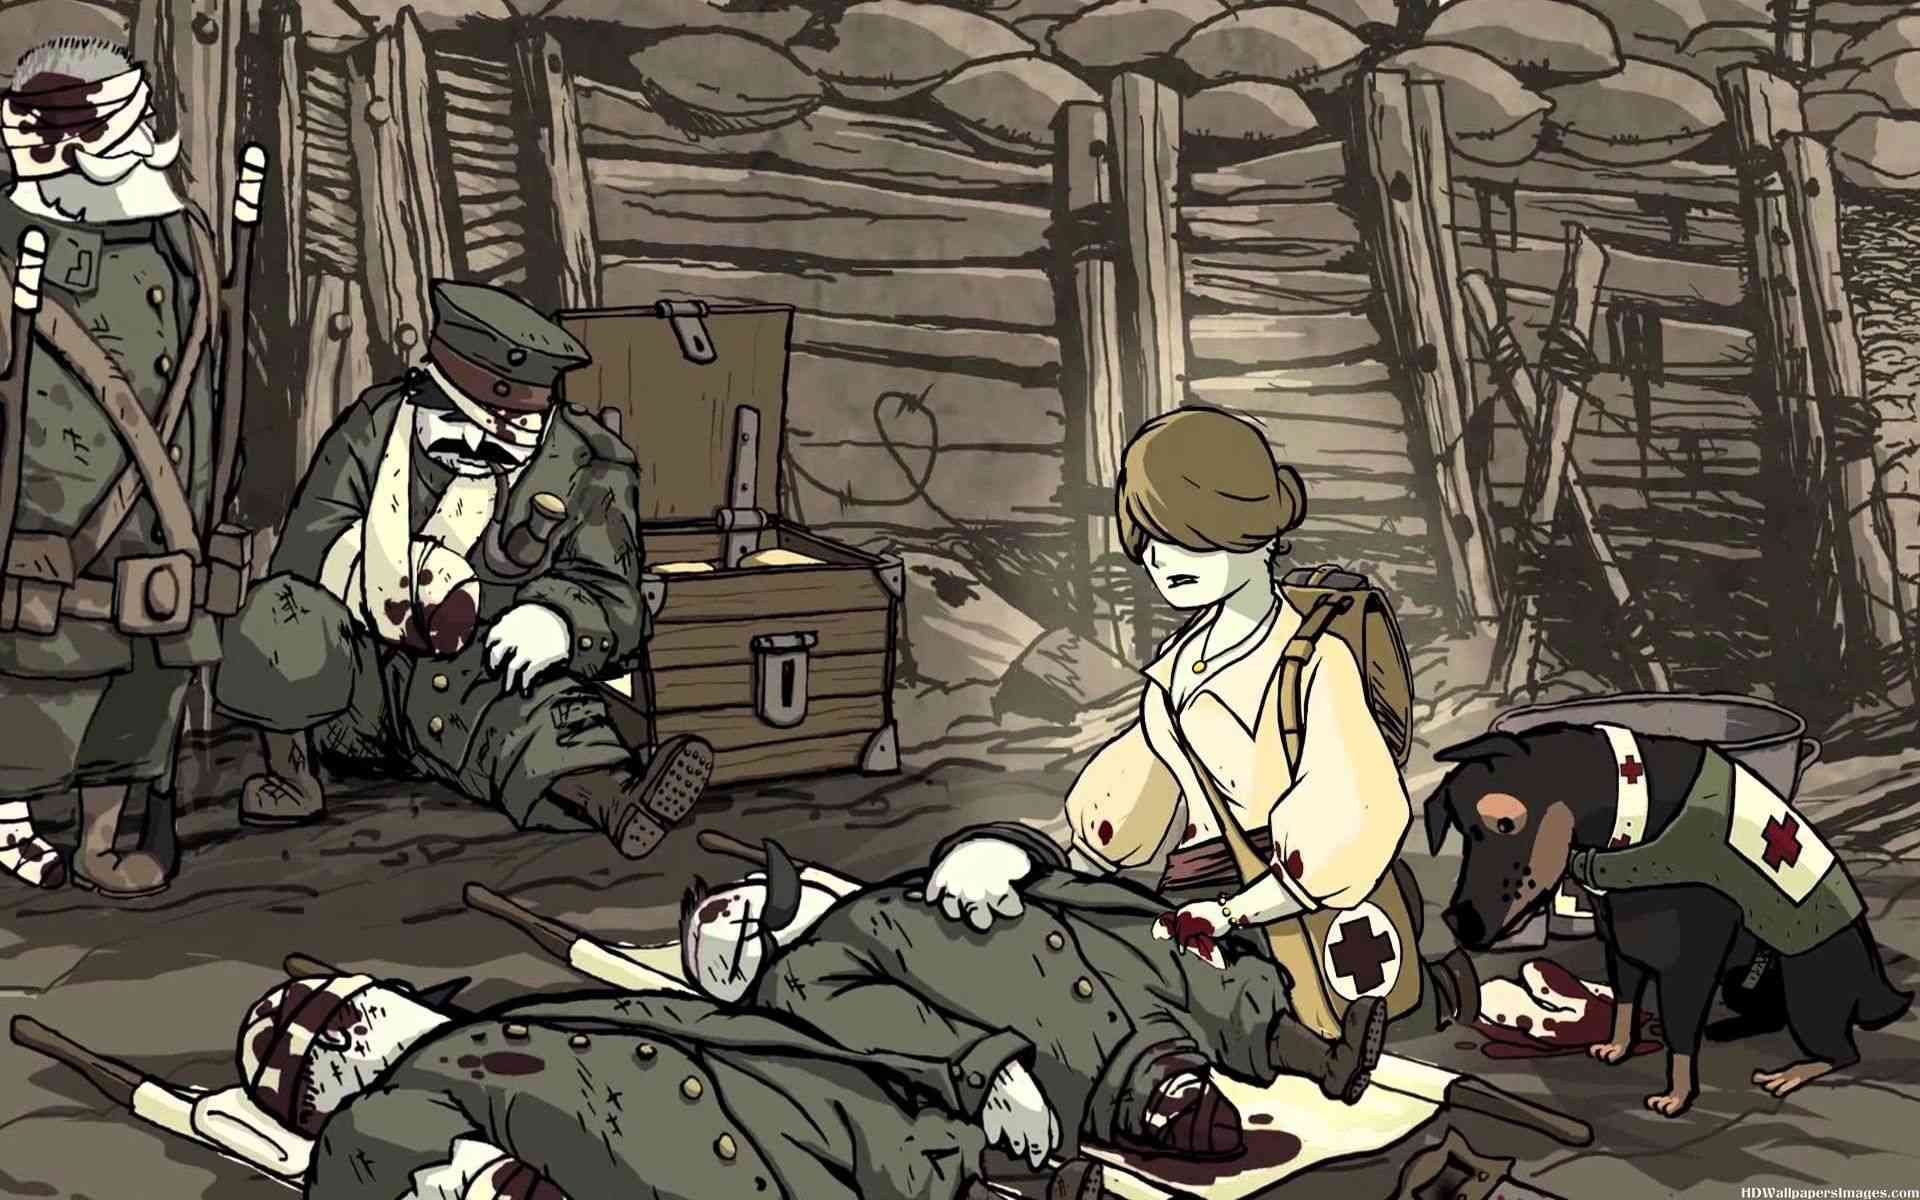 [gamegokil] Valiant Hearts The Great War Single Link Iso Full Version